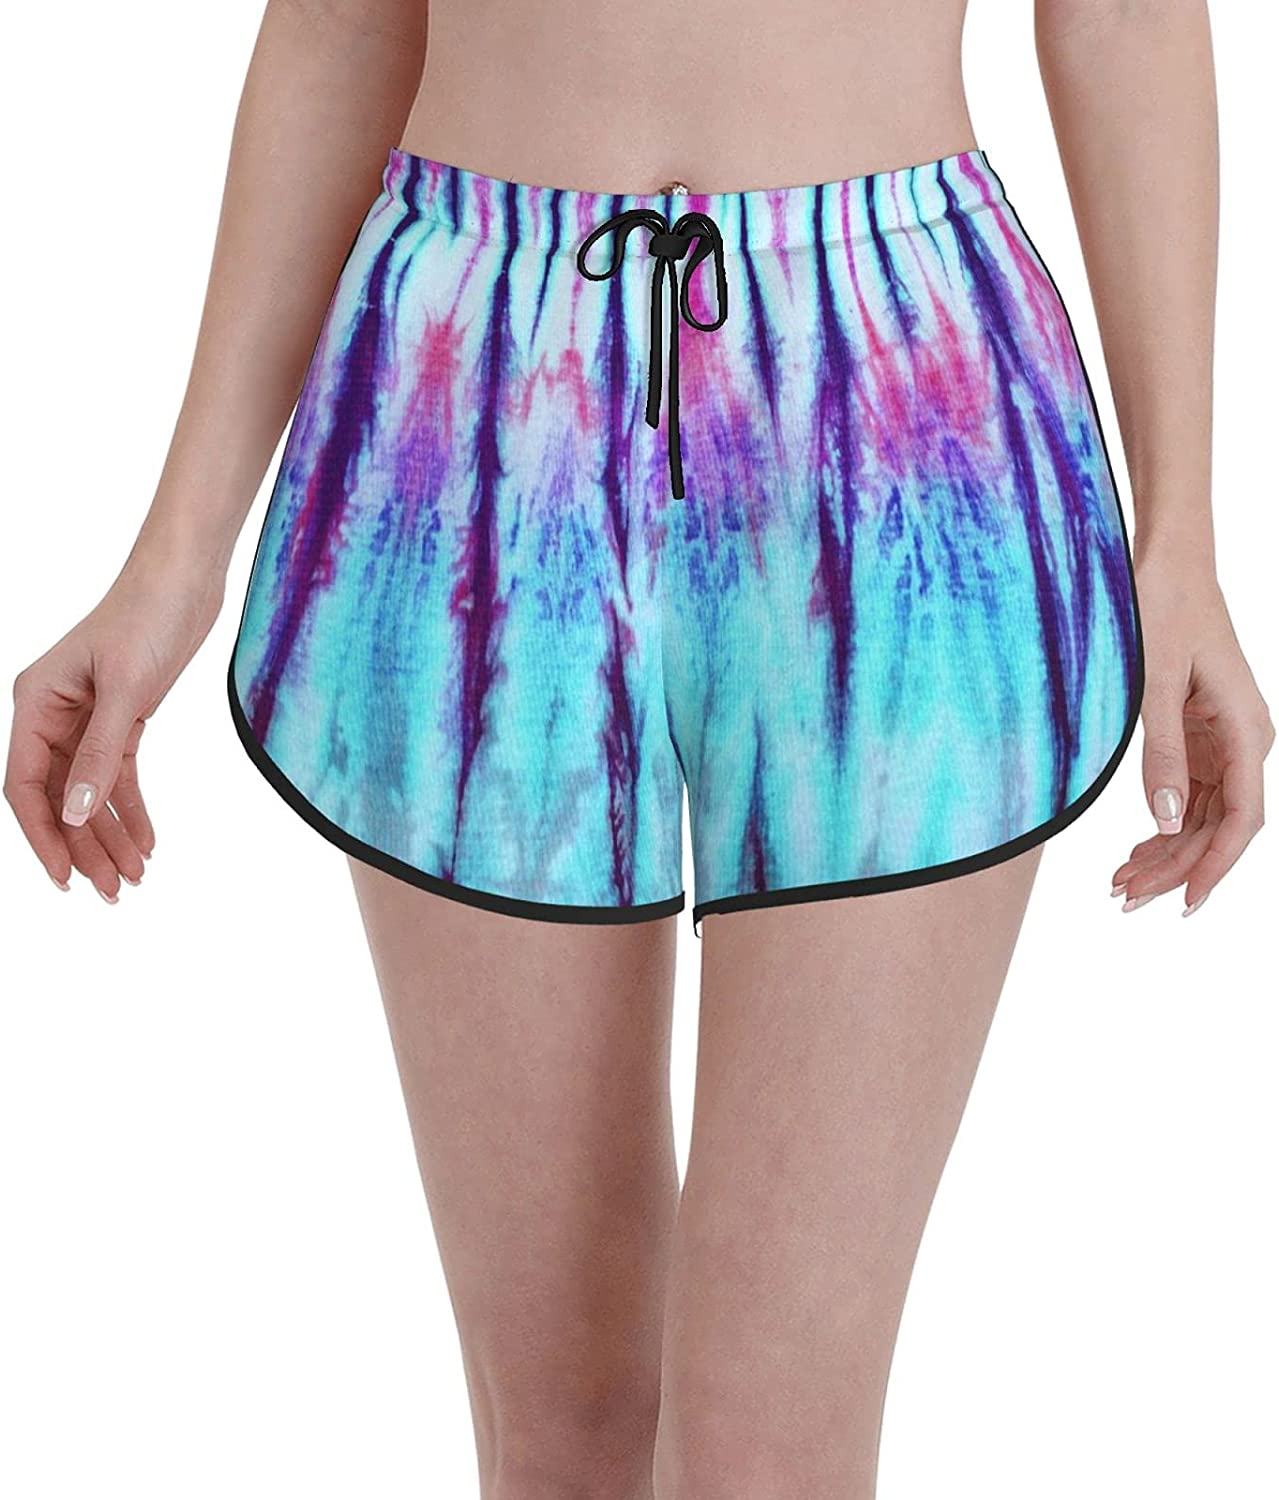 Mesa Mall Comfortable Casual Special sale item Board Shorts for Women Dyed Cott Girls On Tie